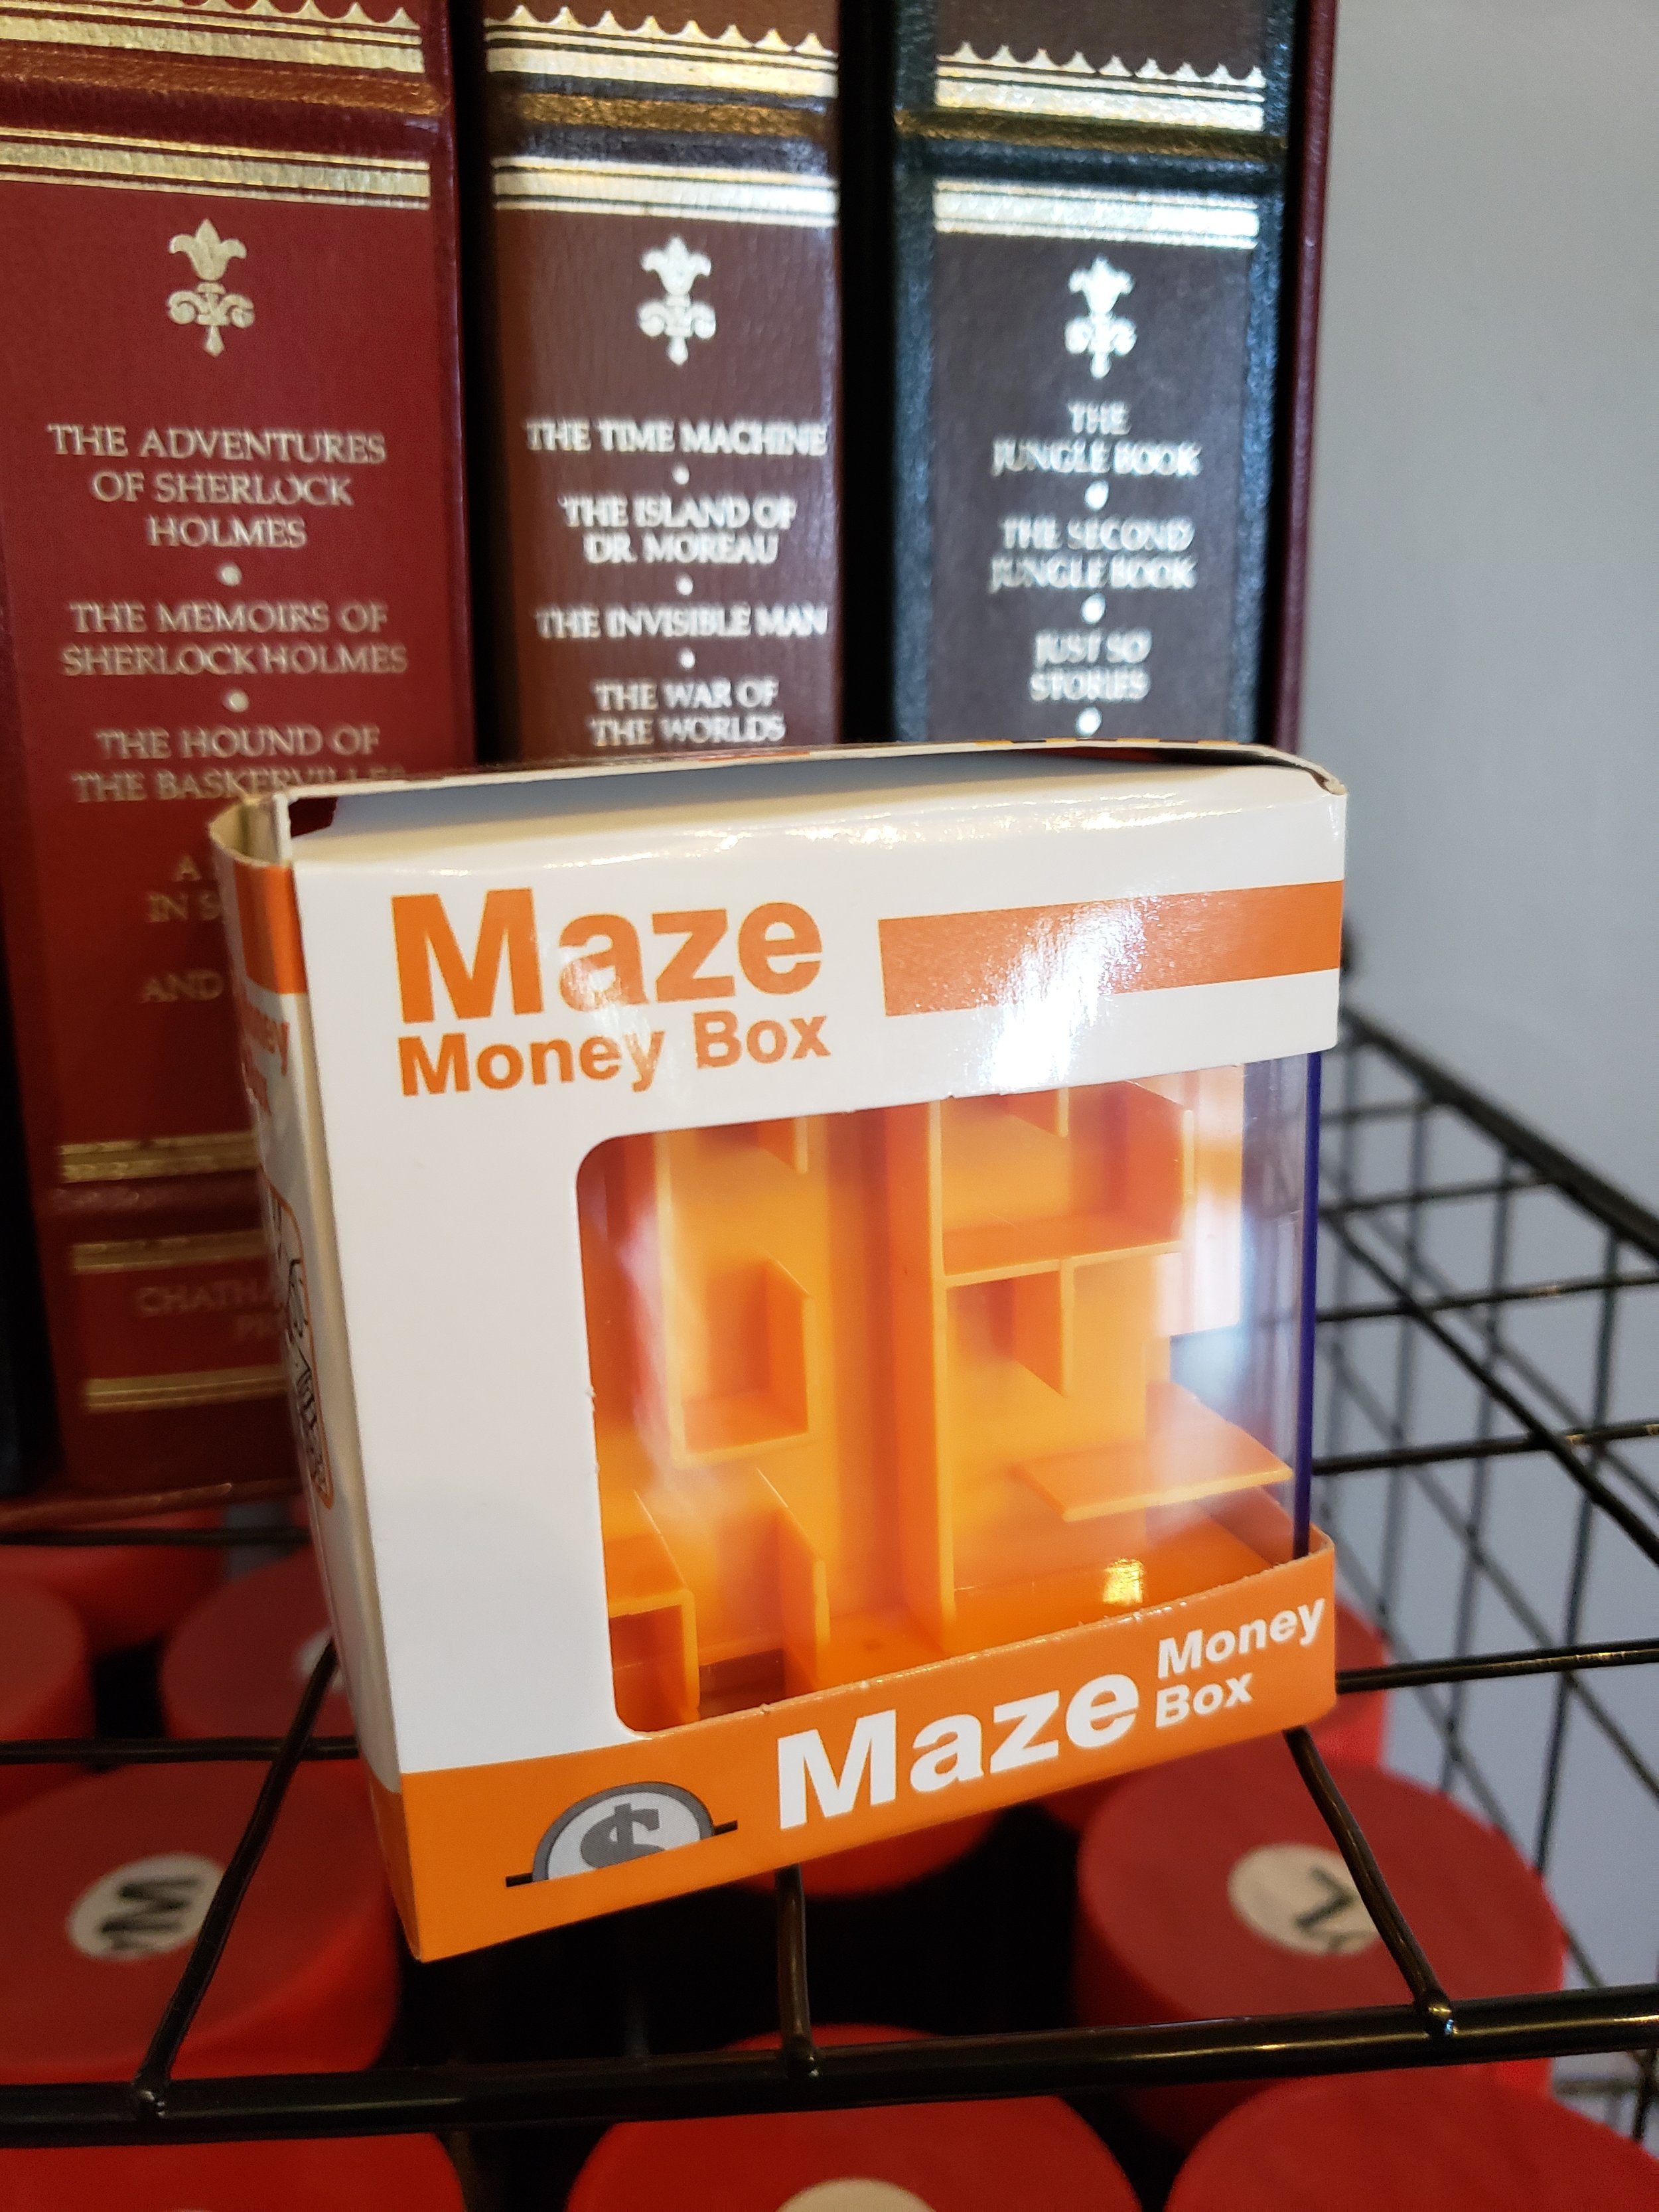 Love to see your friends struggle? How bout the kids? Well this is the maze for you! Throw $5 inside and watch the joy as they have to solve a puzzle to get it out. $10